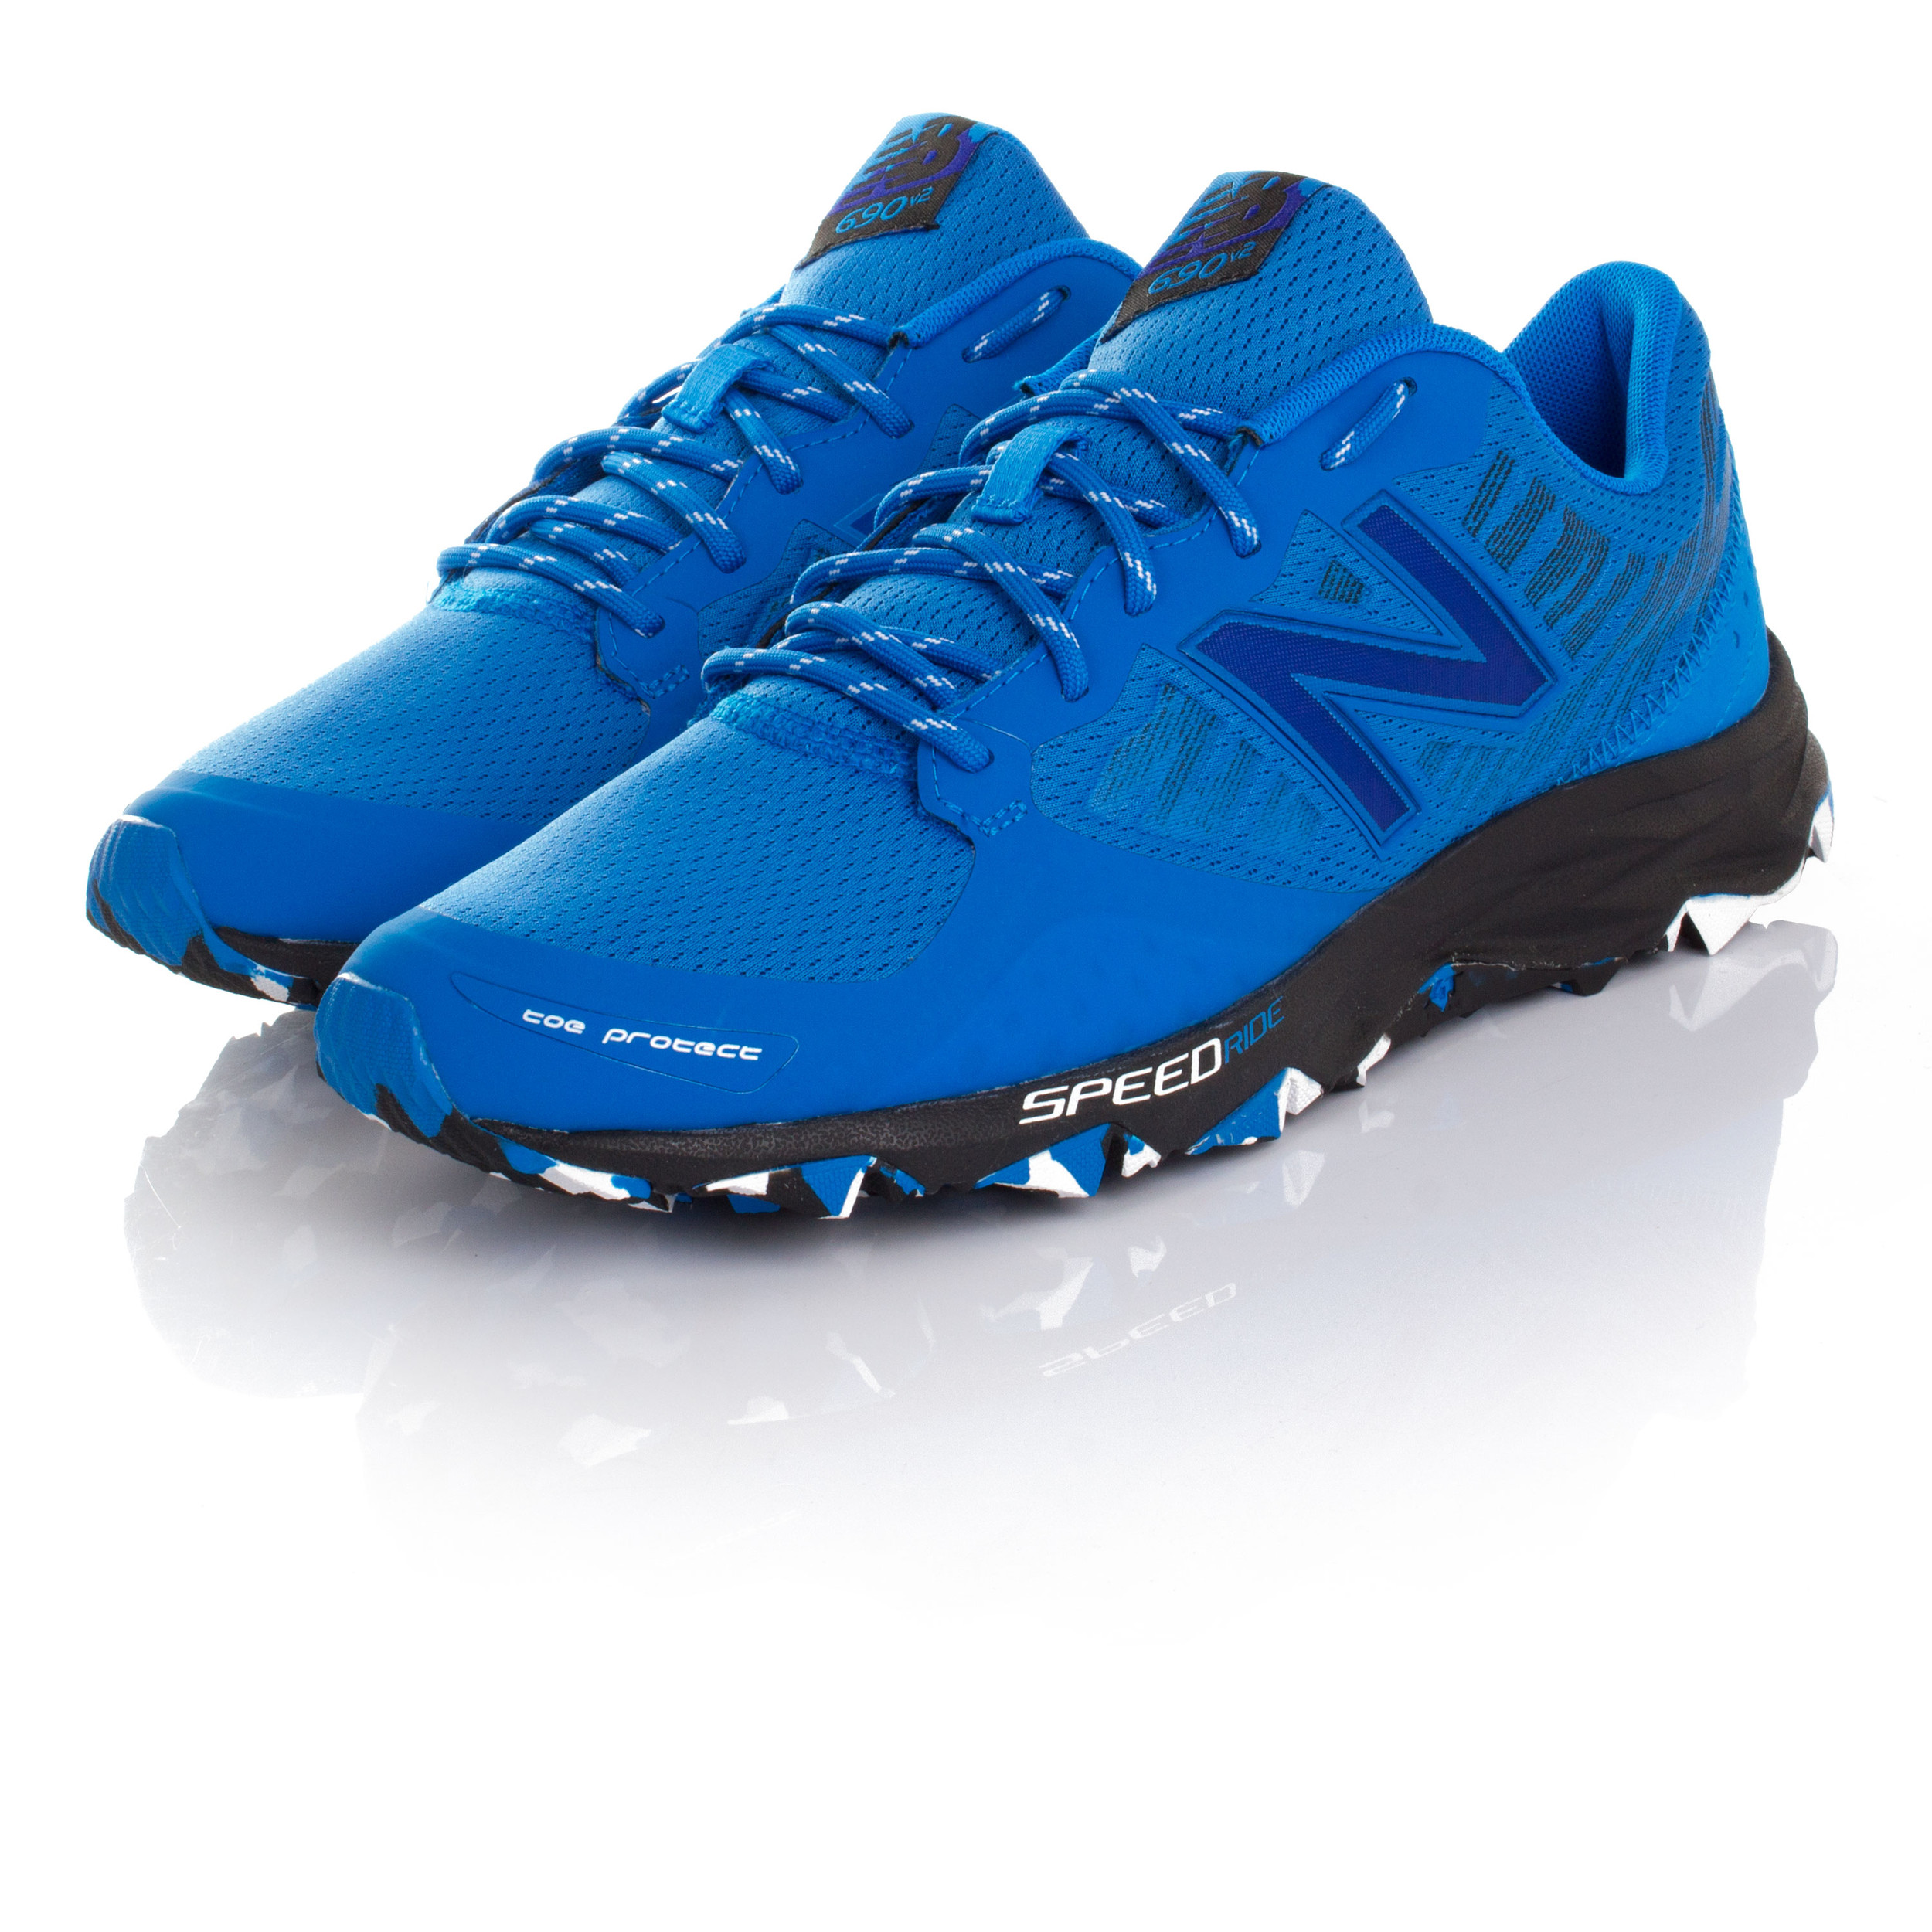 New-Balance-MT690v2-Mens-Blue-Running-Sports-Shoes-